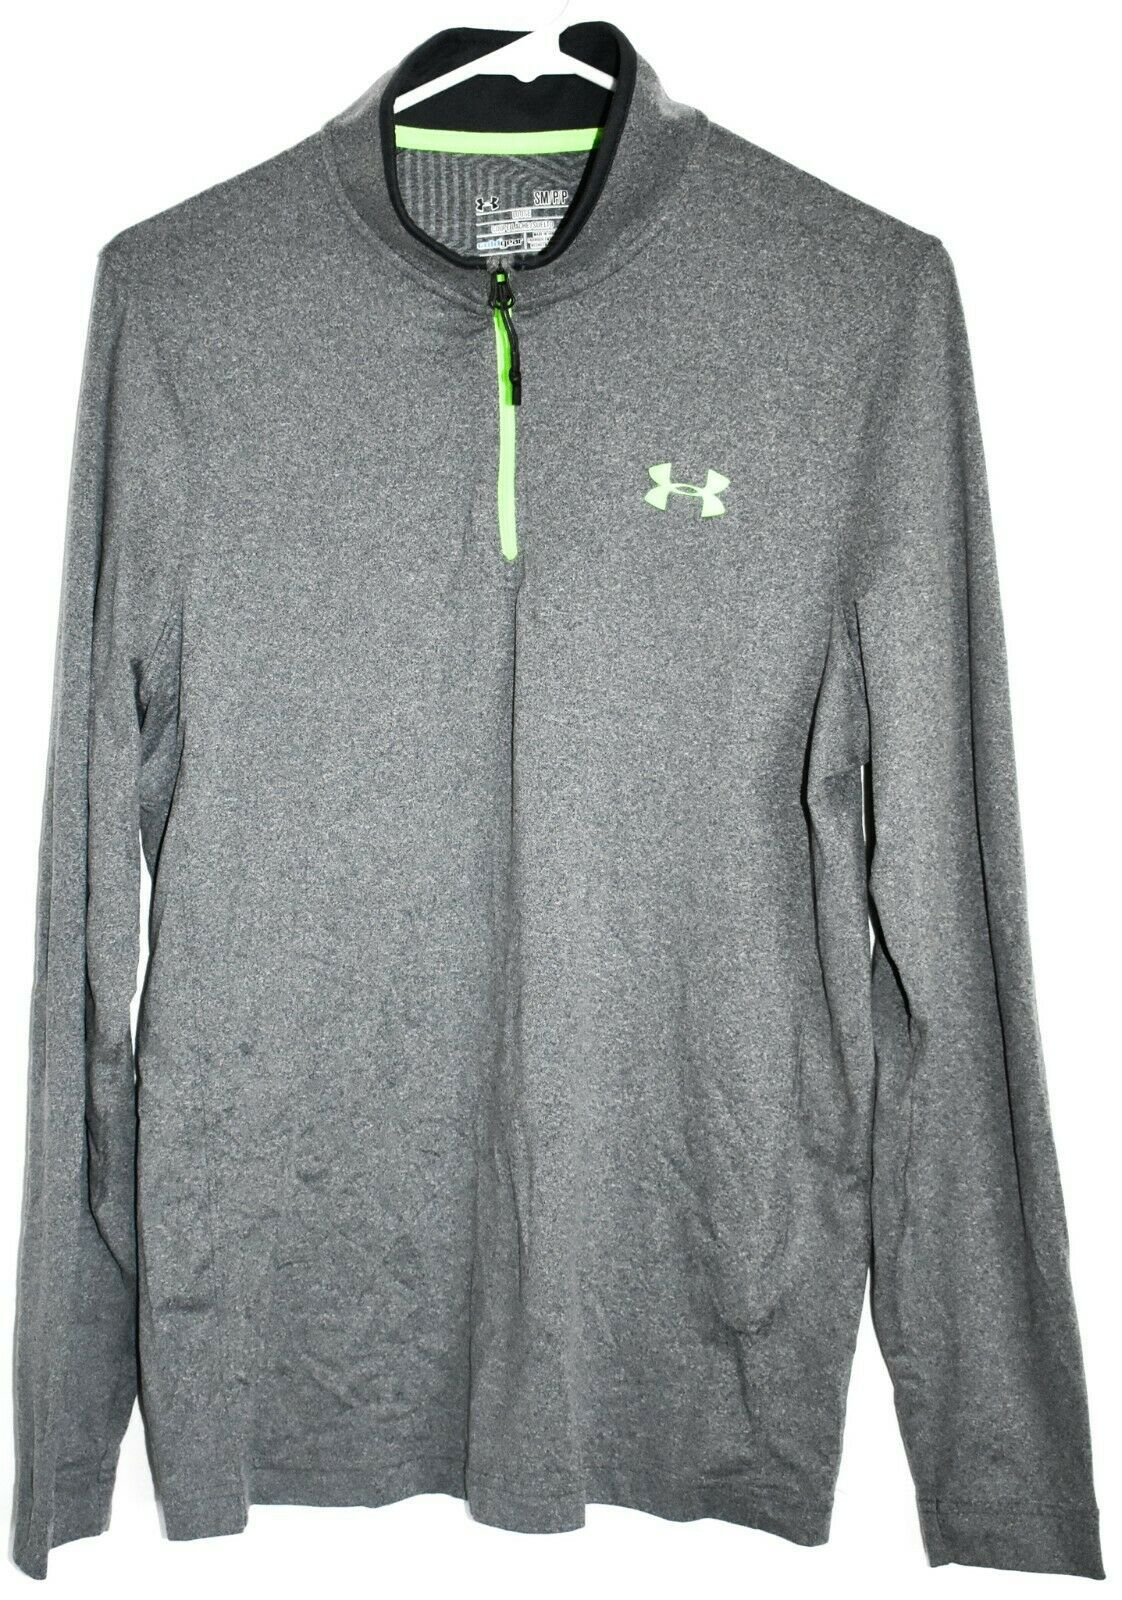 Under Armour Men's Loose Cold Gear 1/4 Zip Grey & Green Long Sleeve Shirt SM